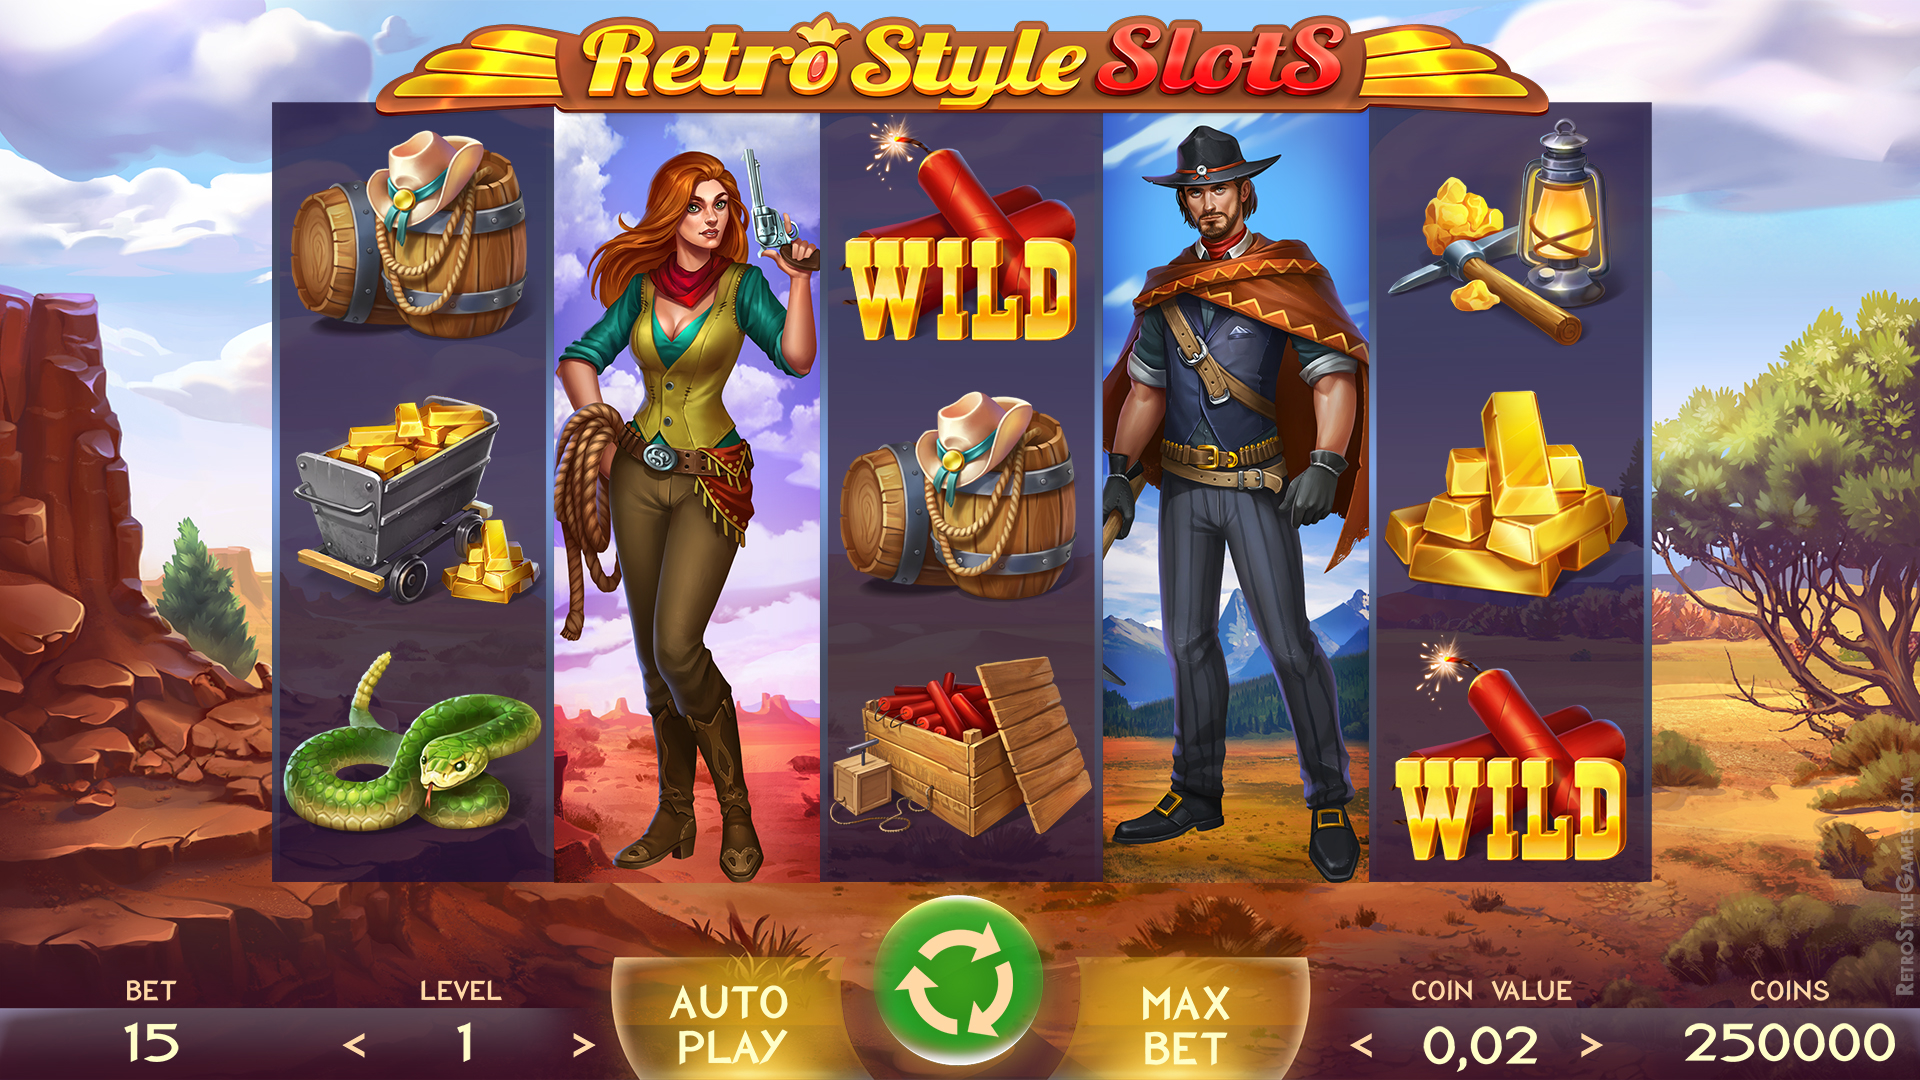 Cowboy Slot Machine Icons, Spine 2D Animation - Free Download